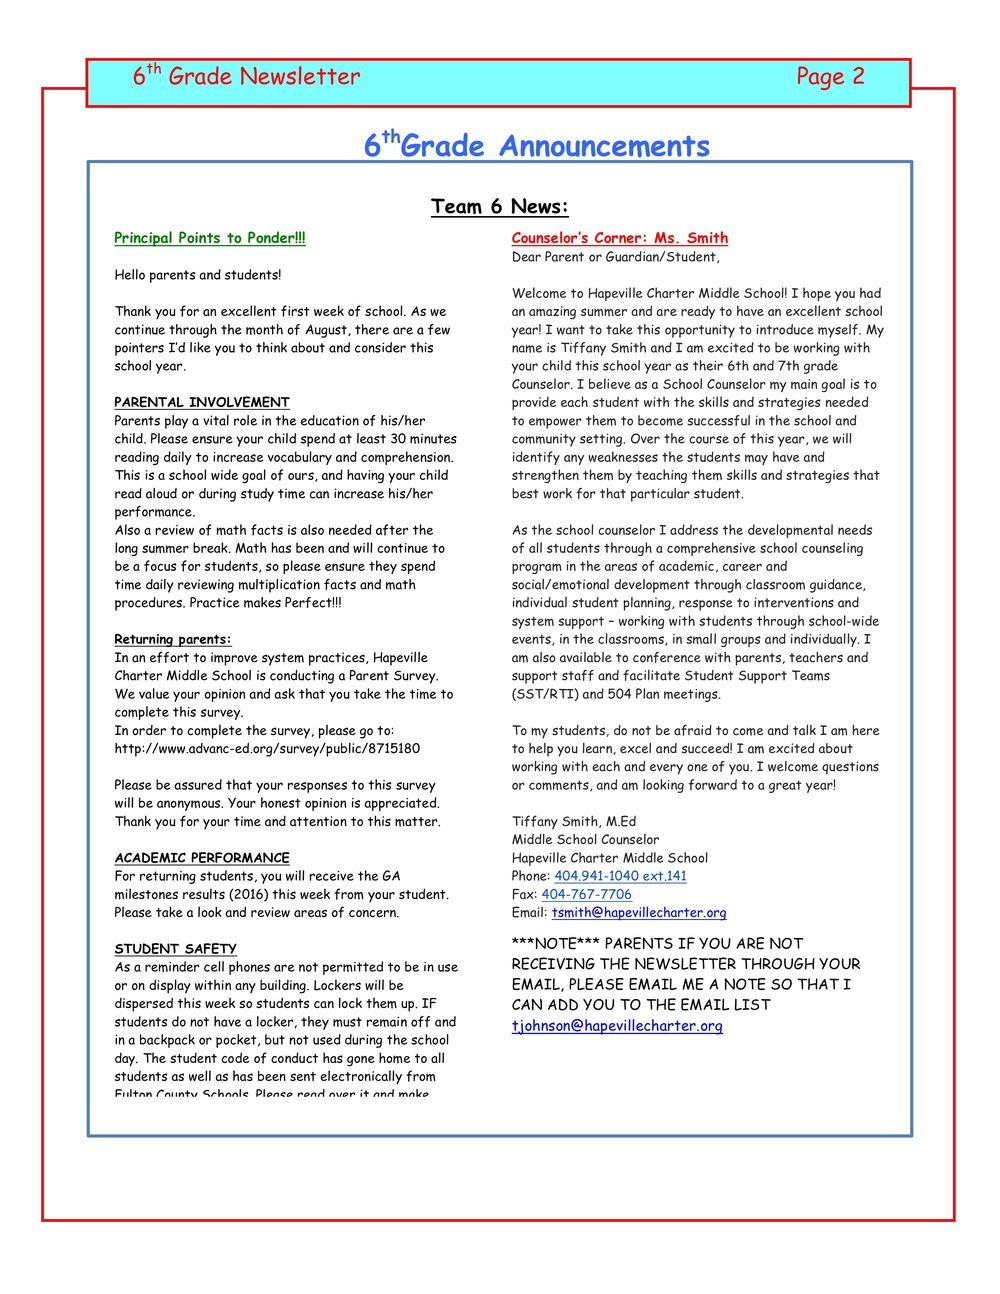 Newsletter Image7th Grade Newsletter 8.15.2016 2.jpeg